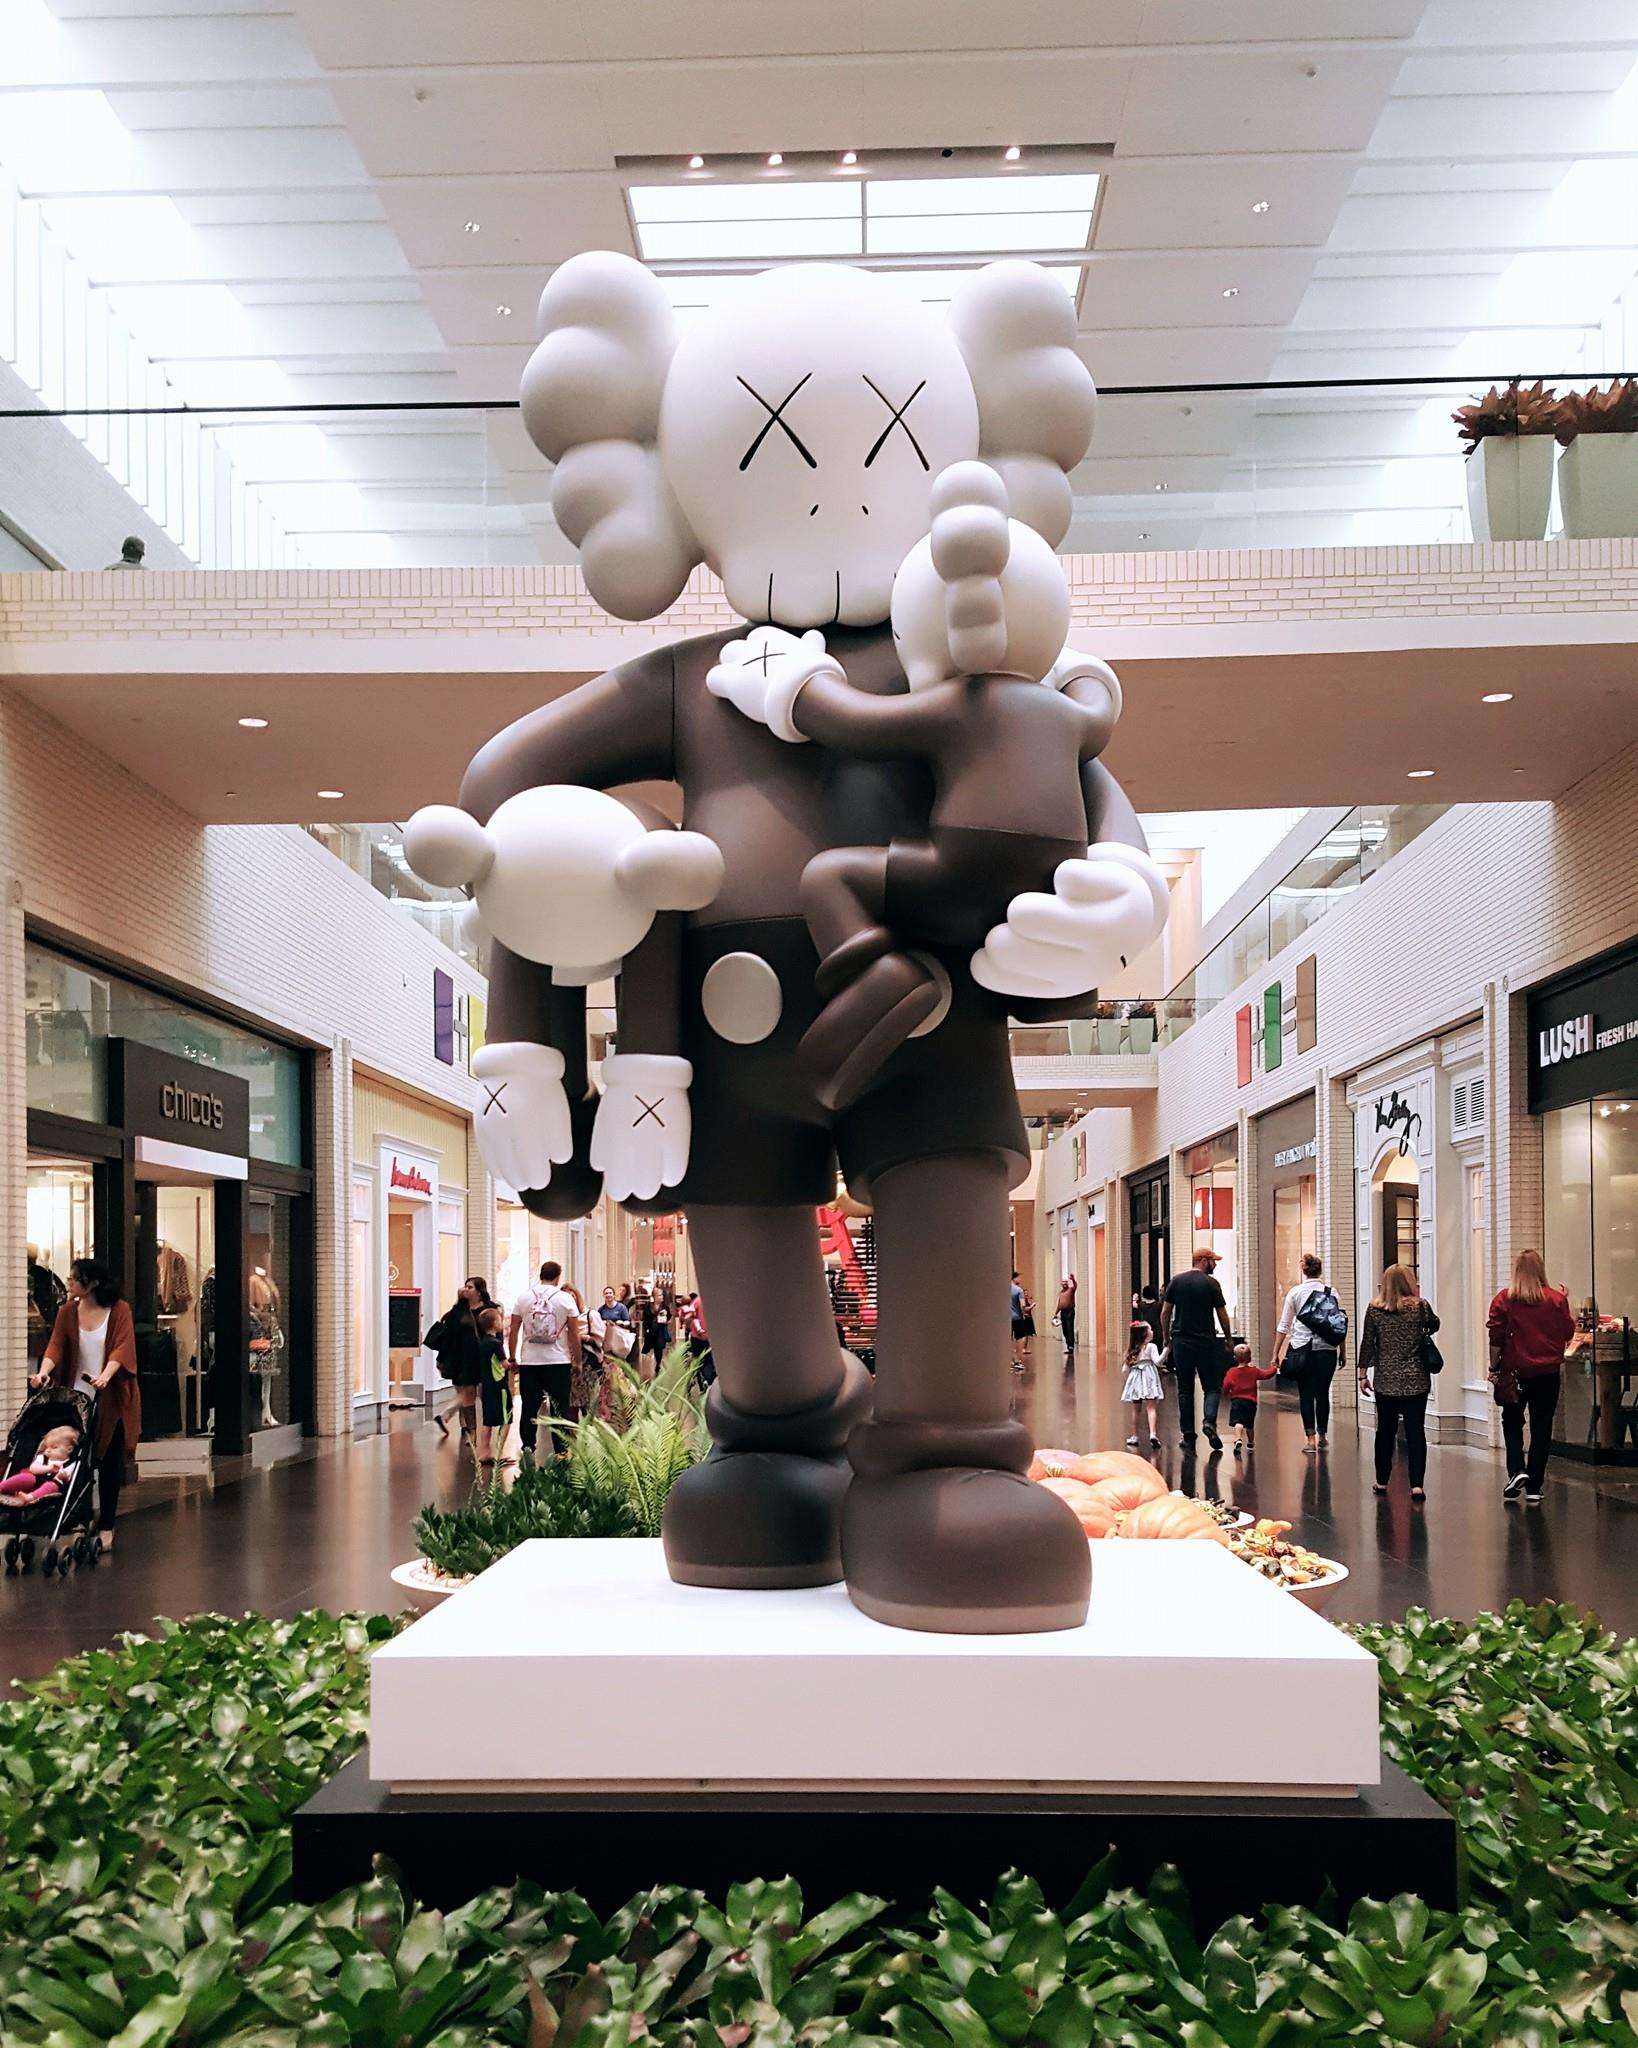 Photo via NorthPark Center.